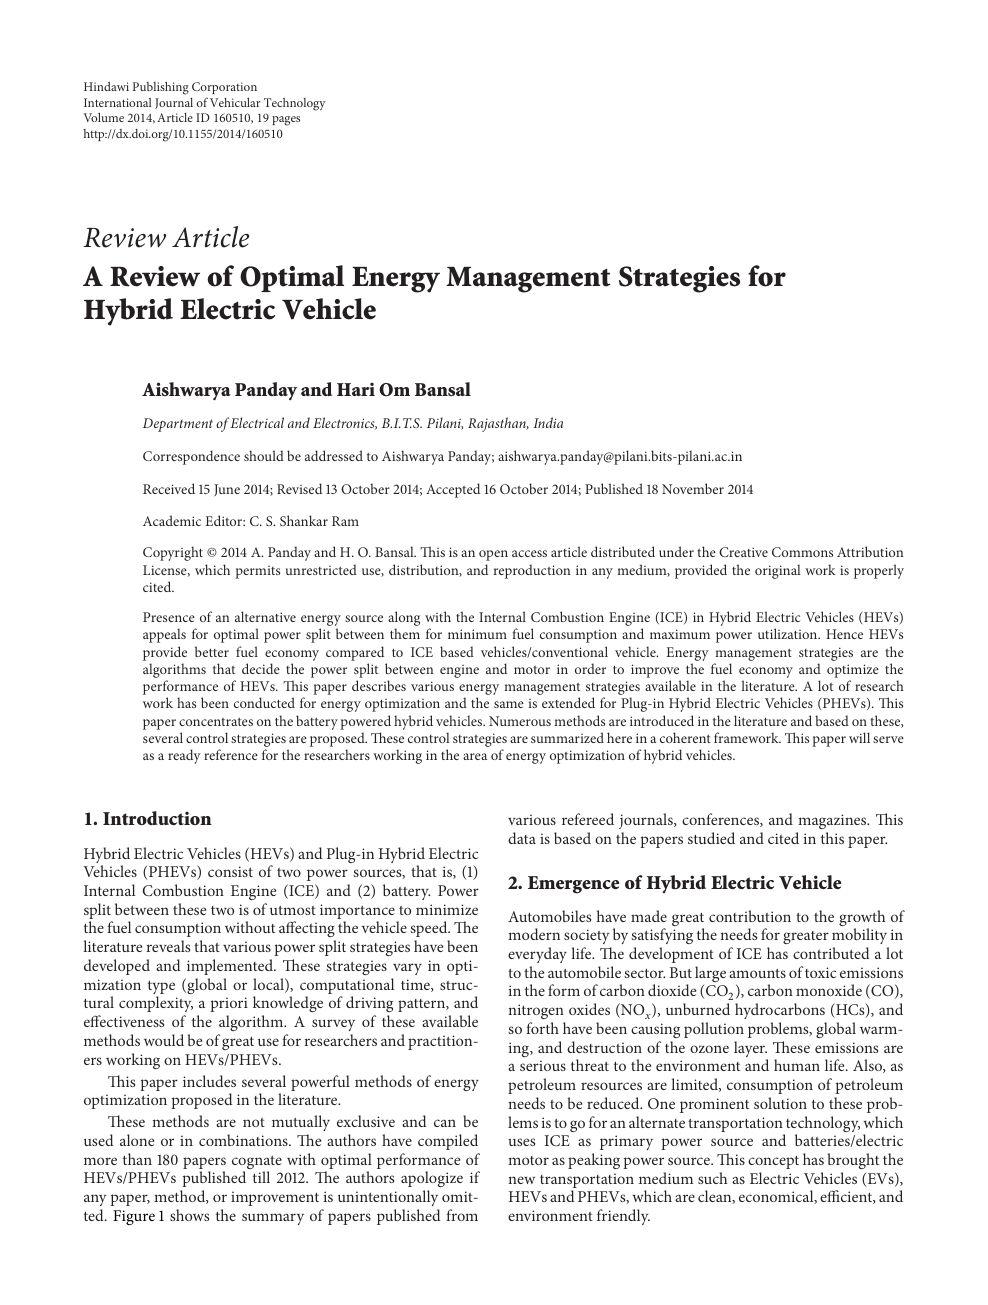 A Review of Optimal Energy Management Strategies for Hybrid Electric